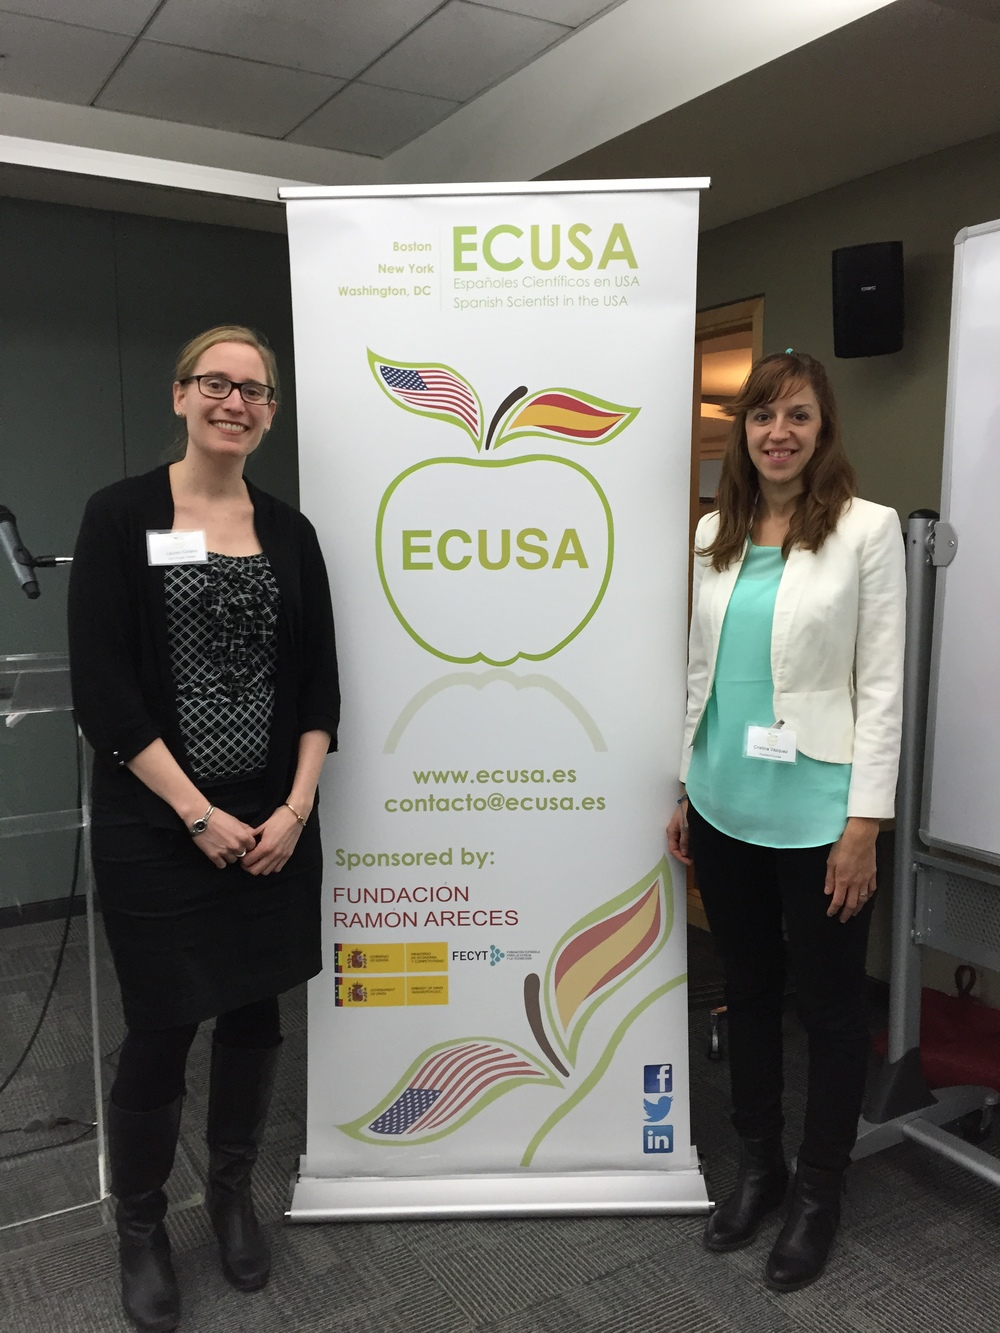 Lauren Celano (left),  Co-founder and CEO of    Propel Careers     and Cristina Vázquez-Mateo (right), president of ECUSA-Boston.  Cambridge Innovation Center, Cambridge, MA. March 16th, 2015